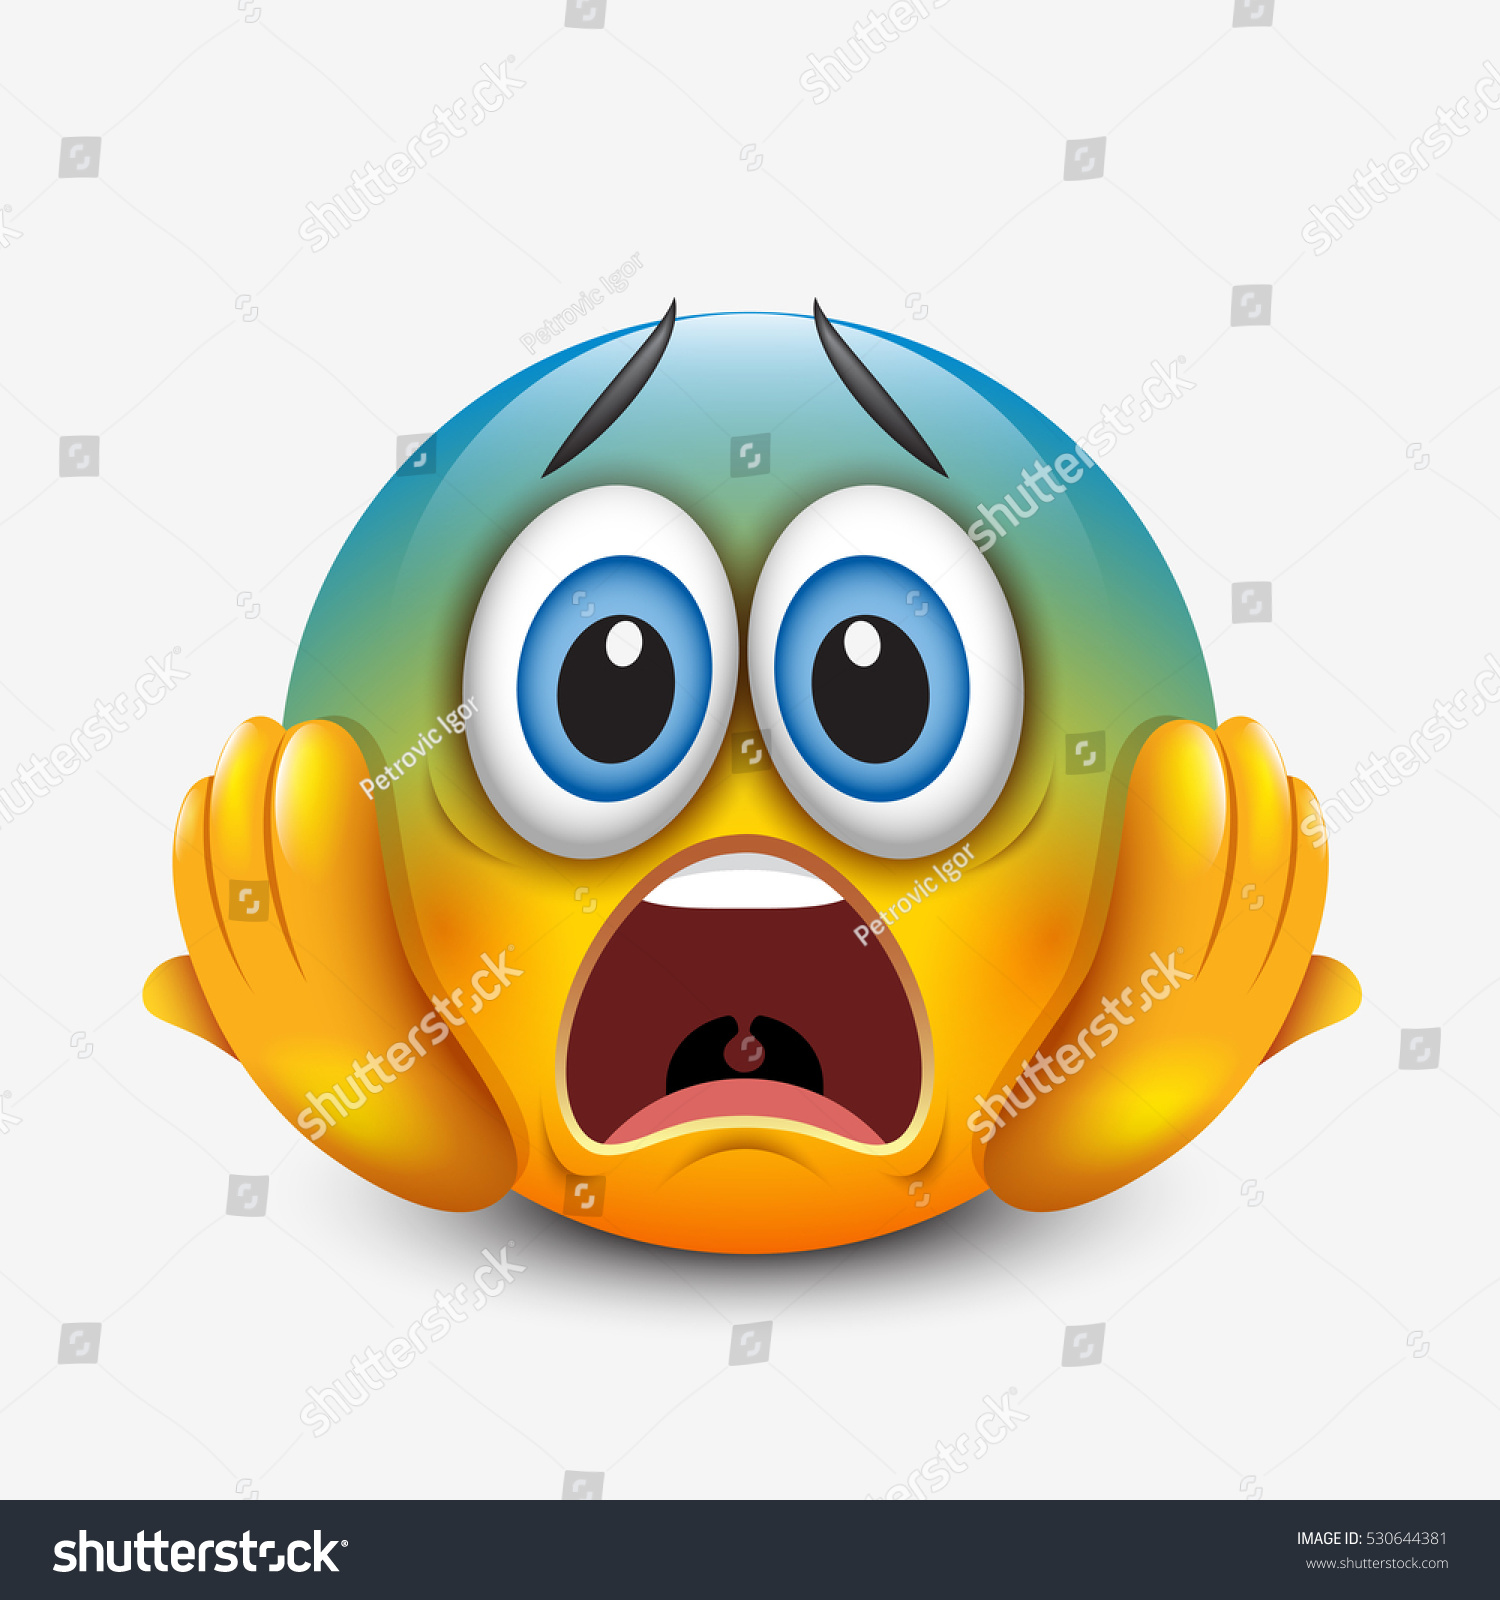 Stock Illustration Scared Cartoon Germ further Scared Emoticon Smiley Cartoon Vector 12363901 furthermore Lips Clip Art Image 52598 moreover File Taco Mouth as well Royalty Free Stock Photography Cartoon Faces Set Different Emotions  ics Image33339367. on scared cartoon mouth